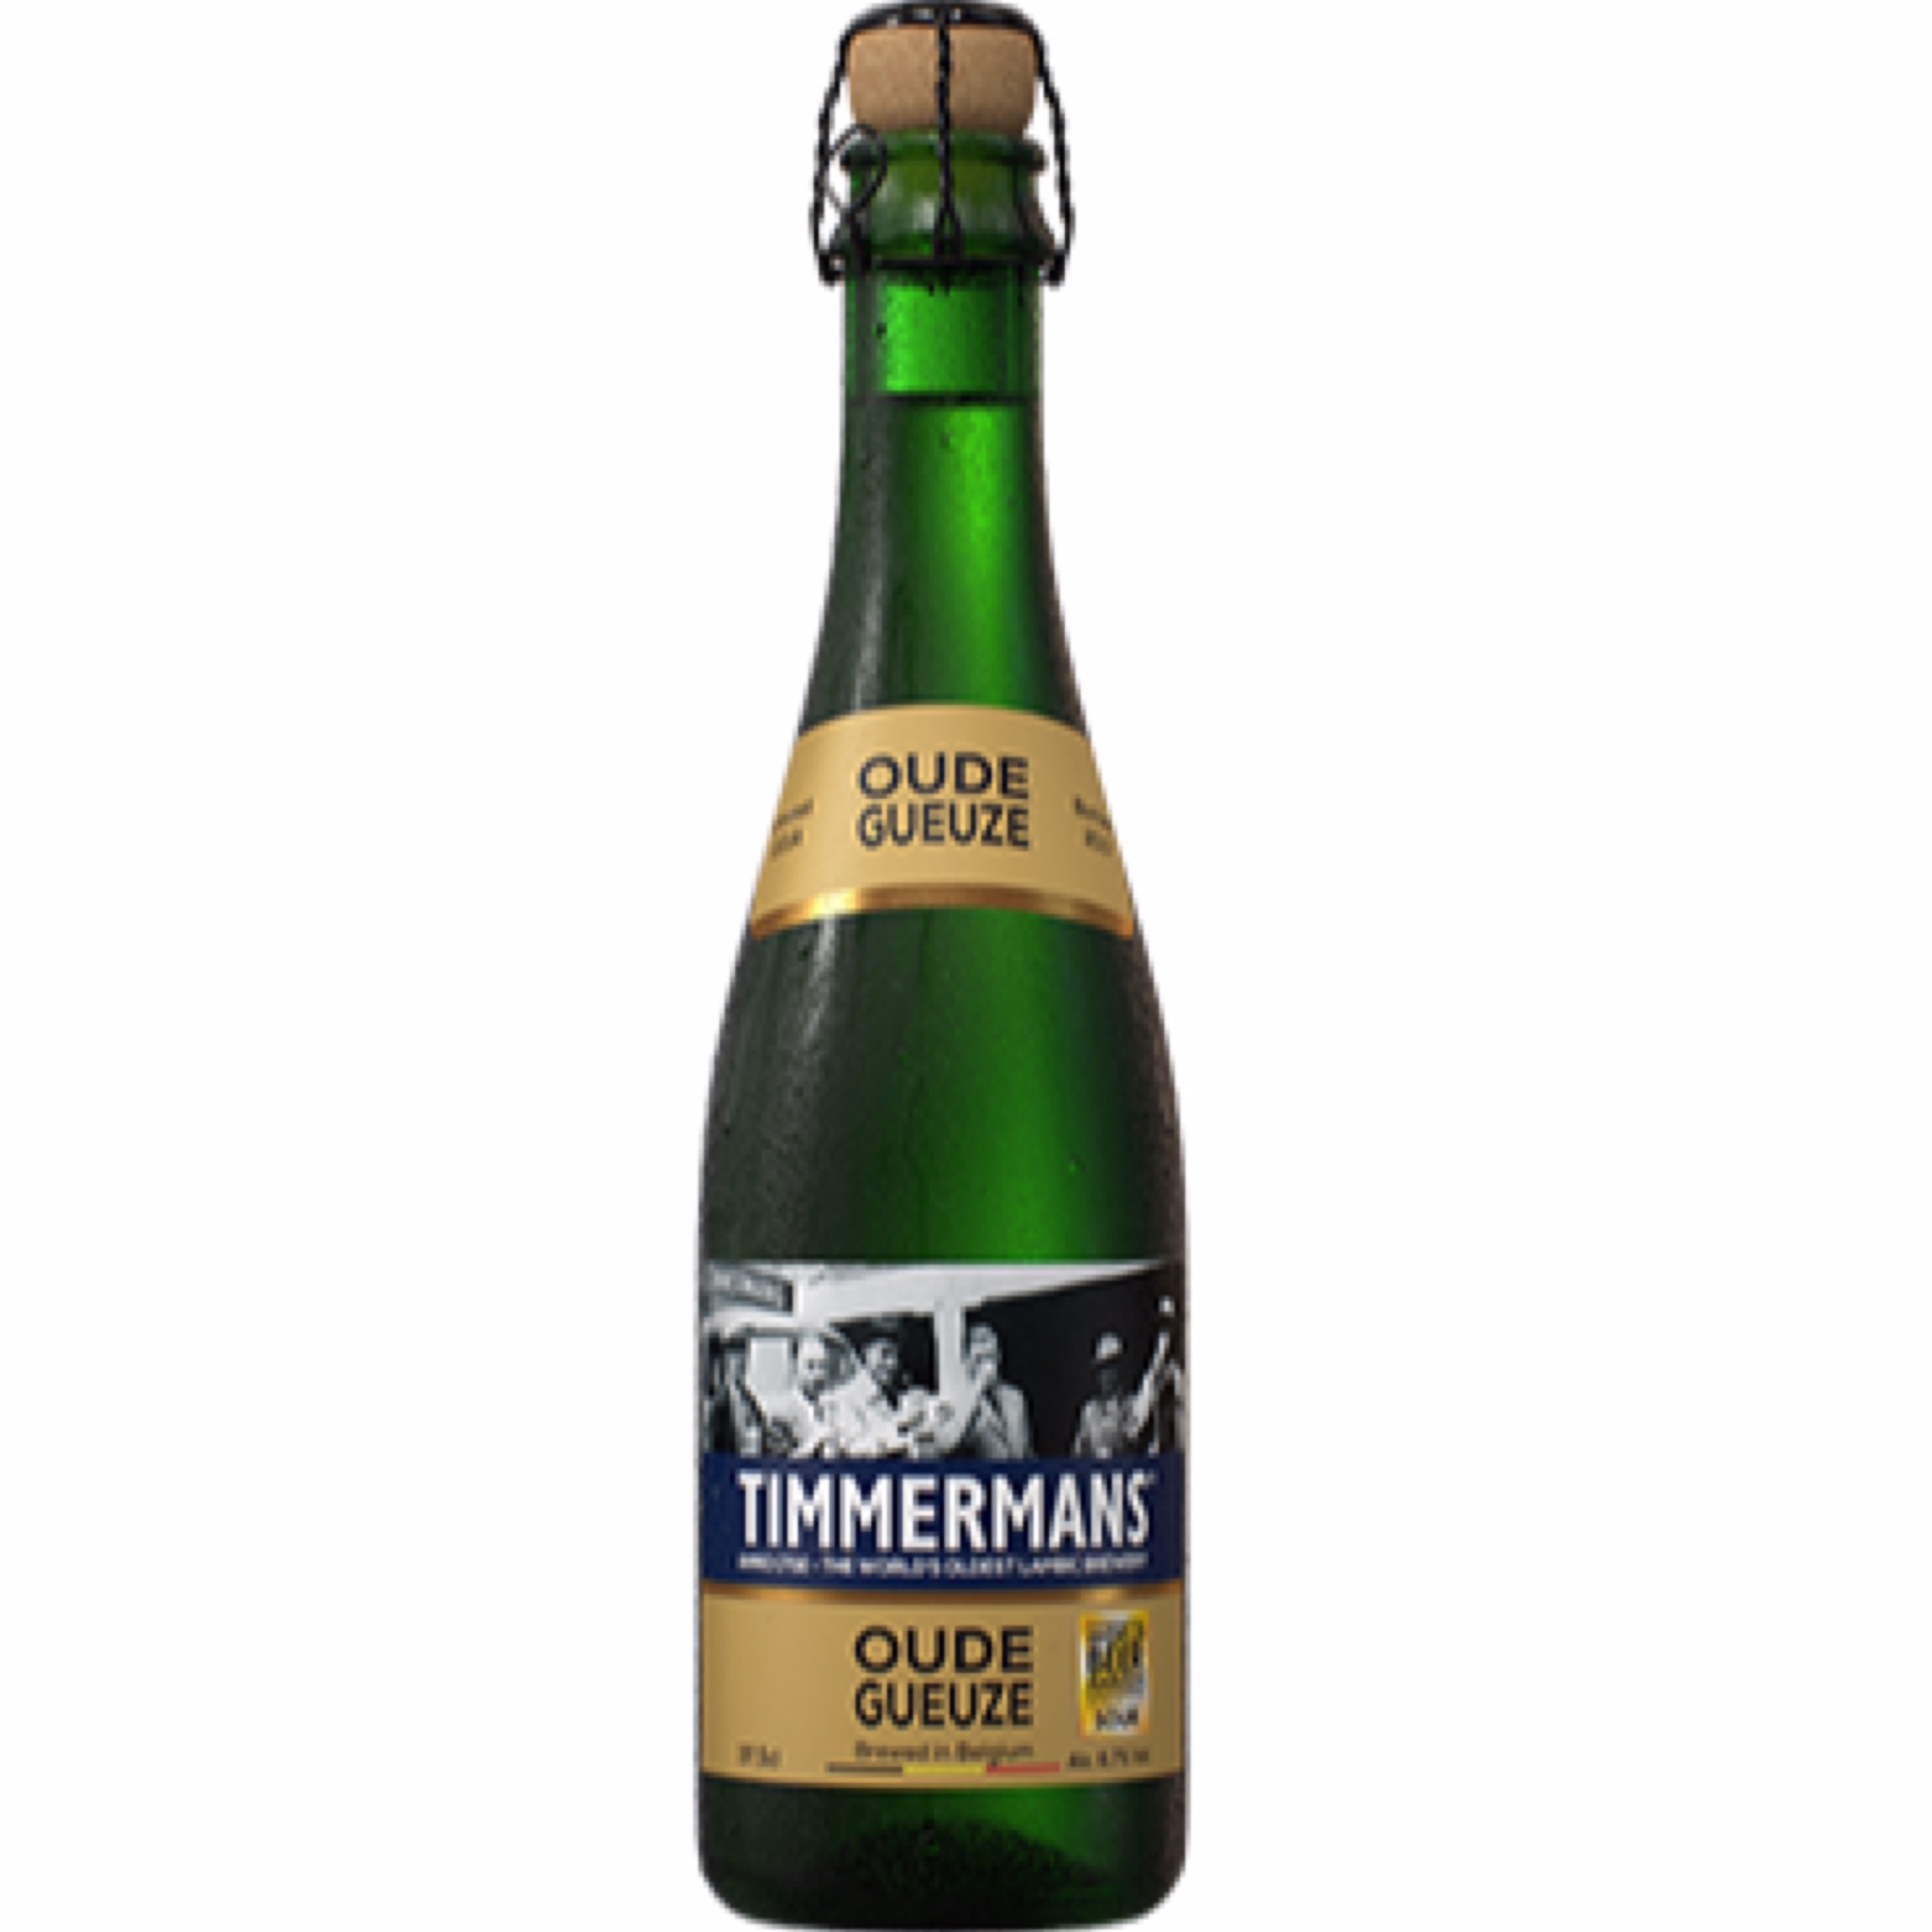 Timmermans Oude Gueuze 6.7% 375ml